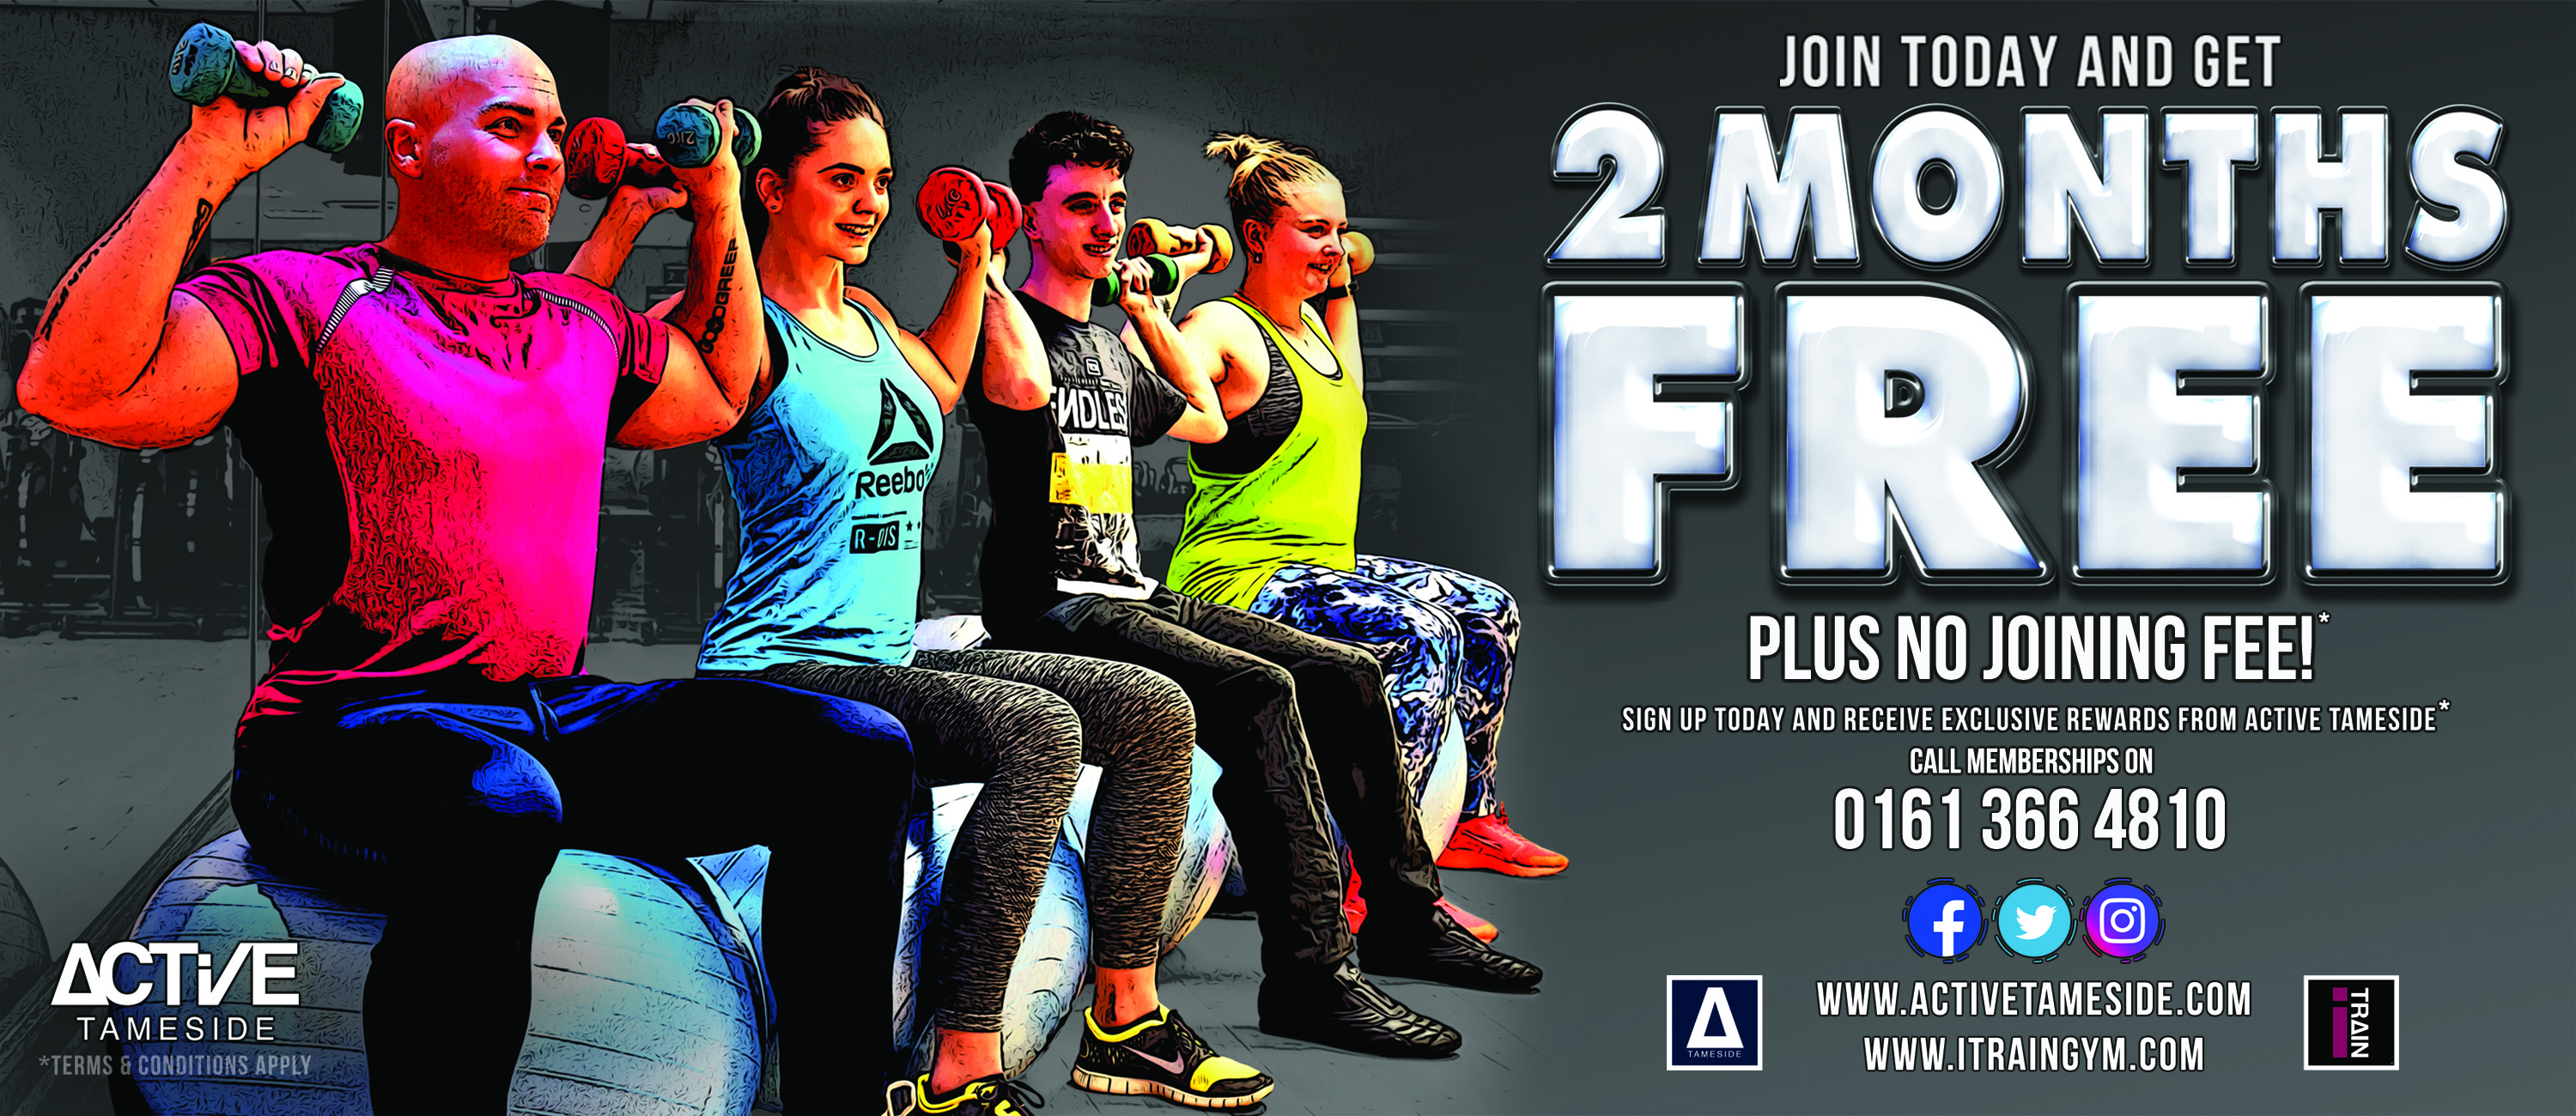 Get 2 months free with Active Tameside